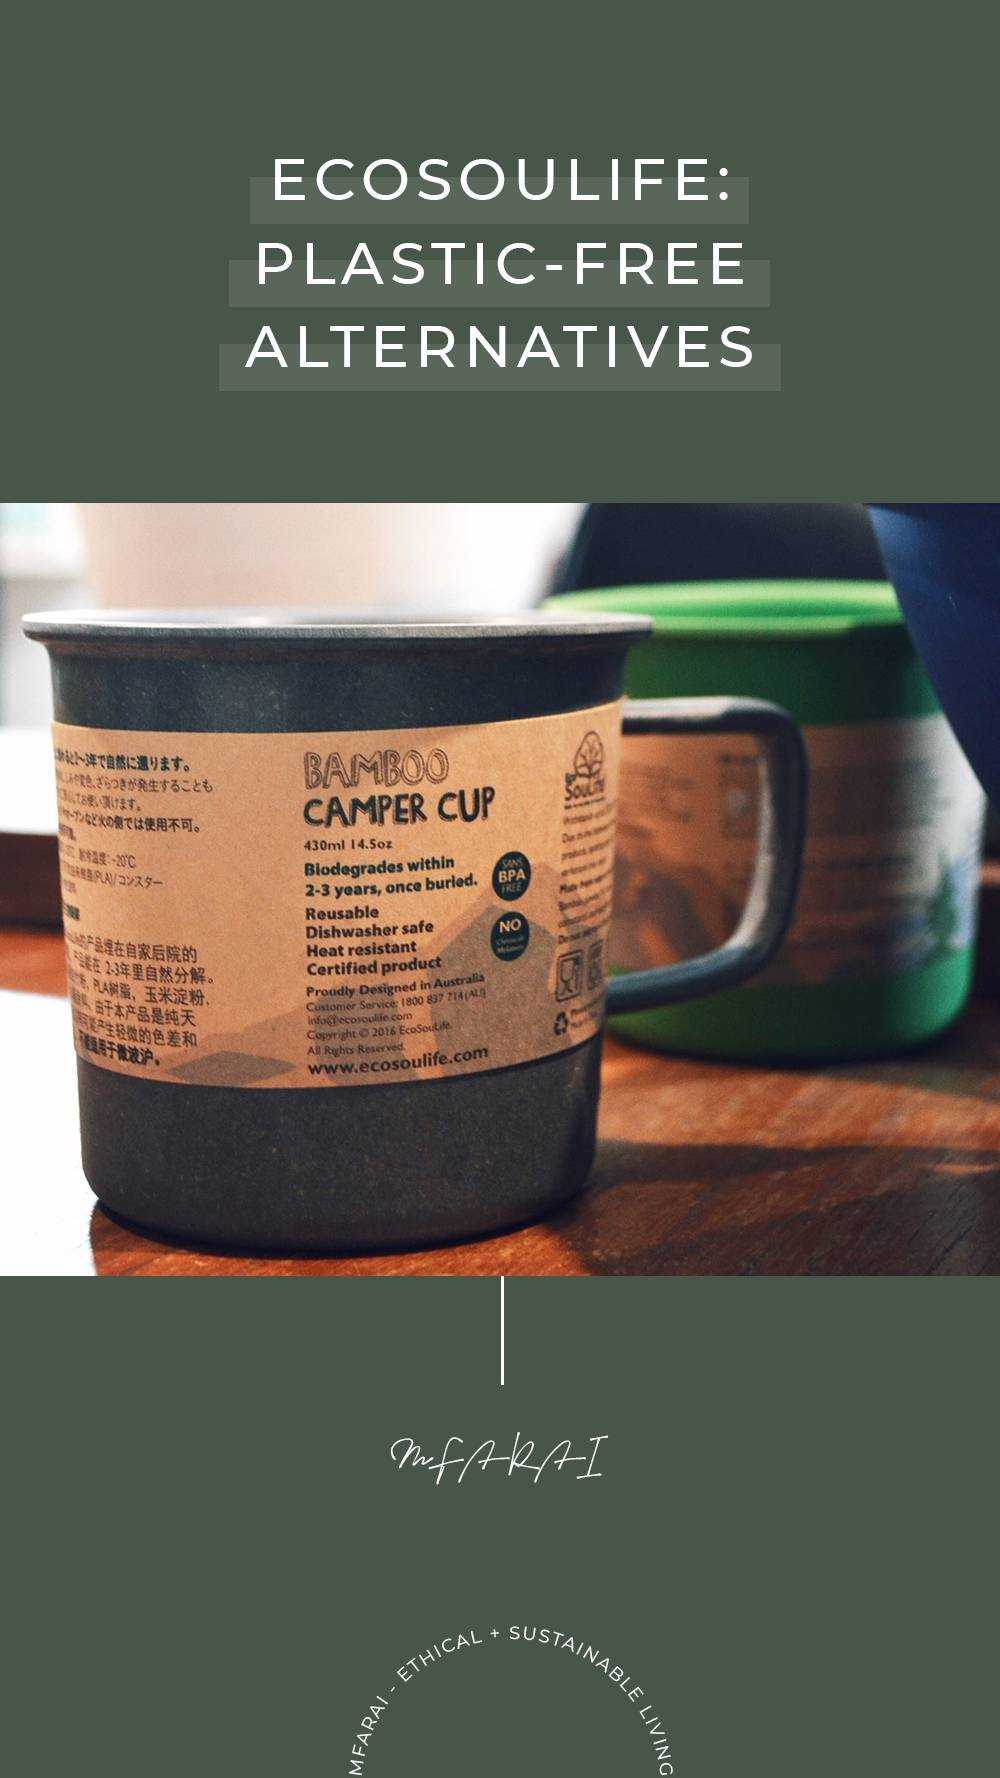 EcoSouLife Plastic-Free Biodegradable